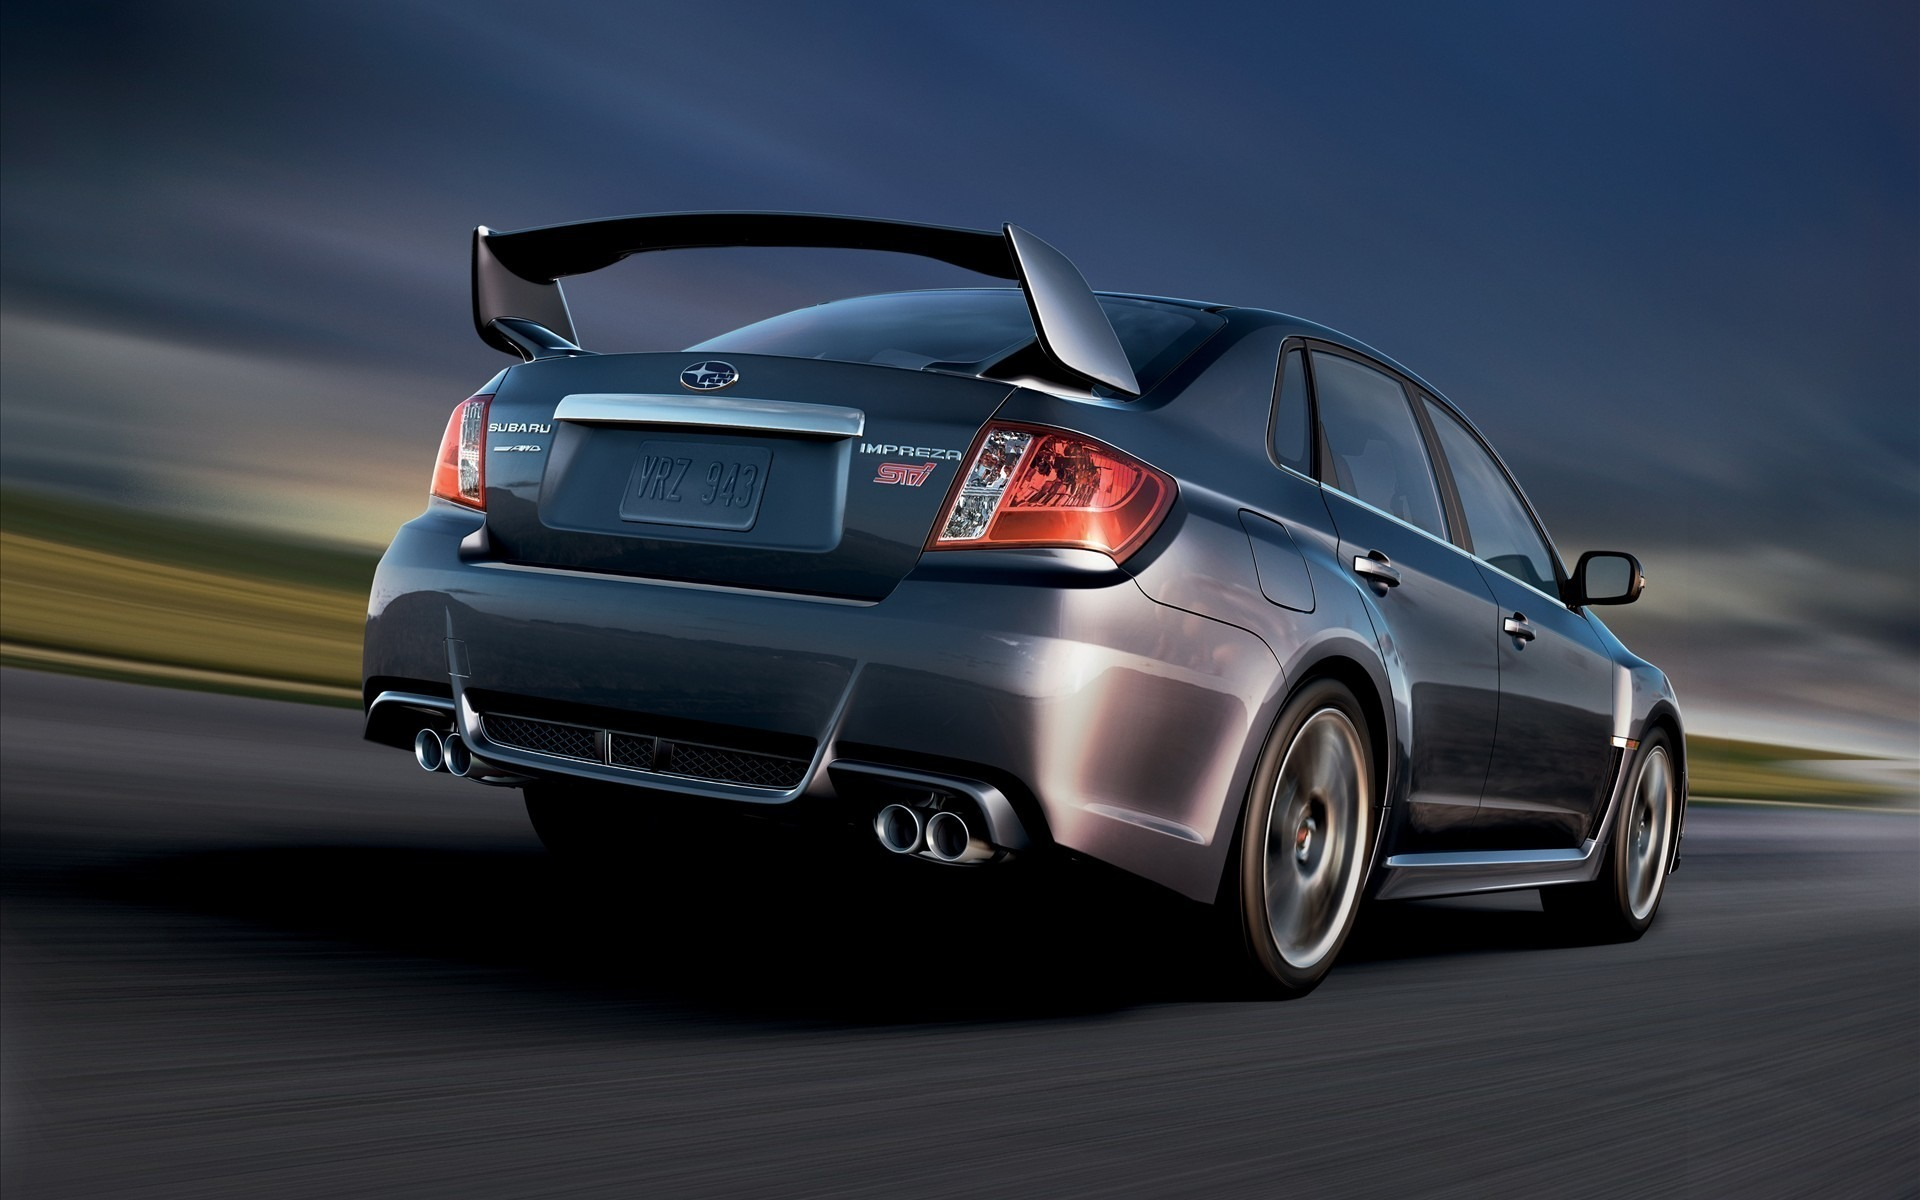 43264 download wallpaper Transport, Auto, Subaru screensavers and pictures for free